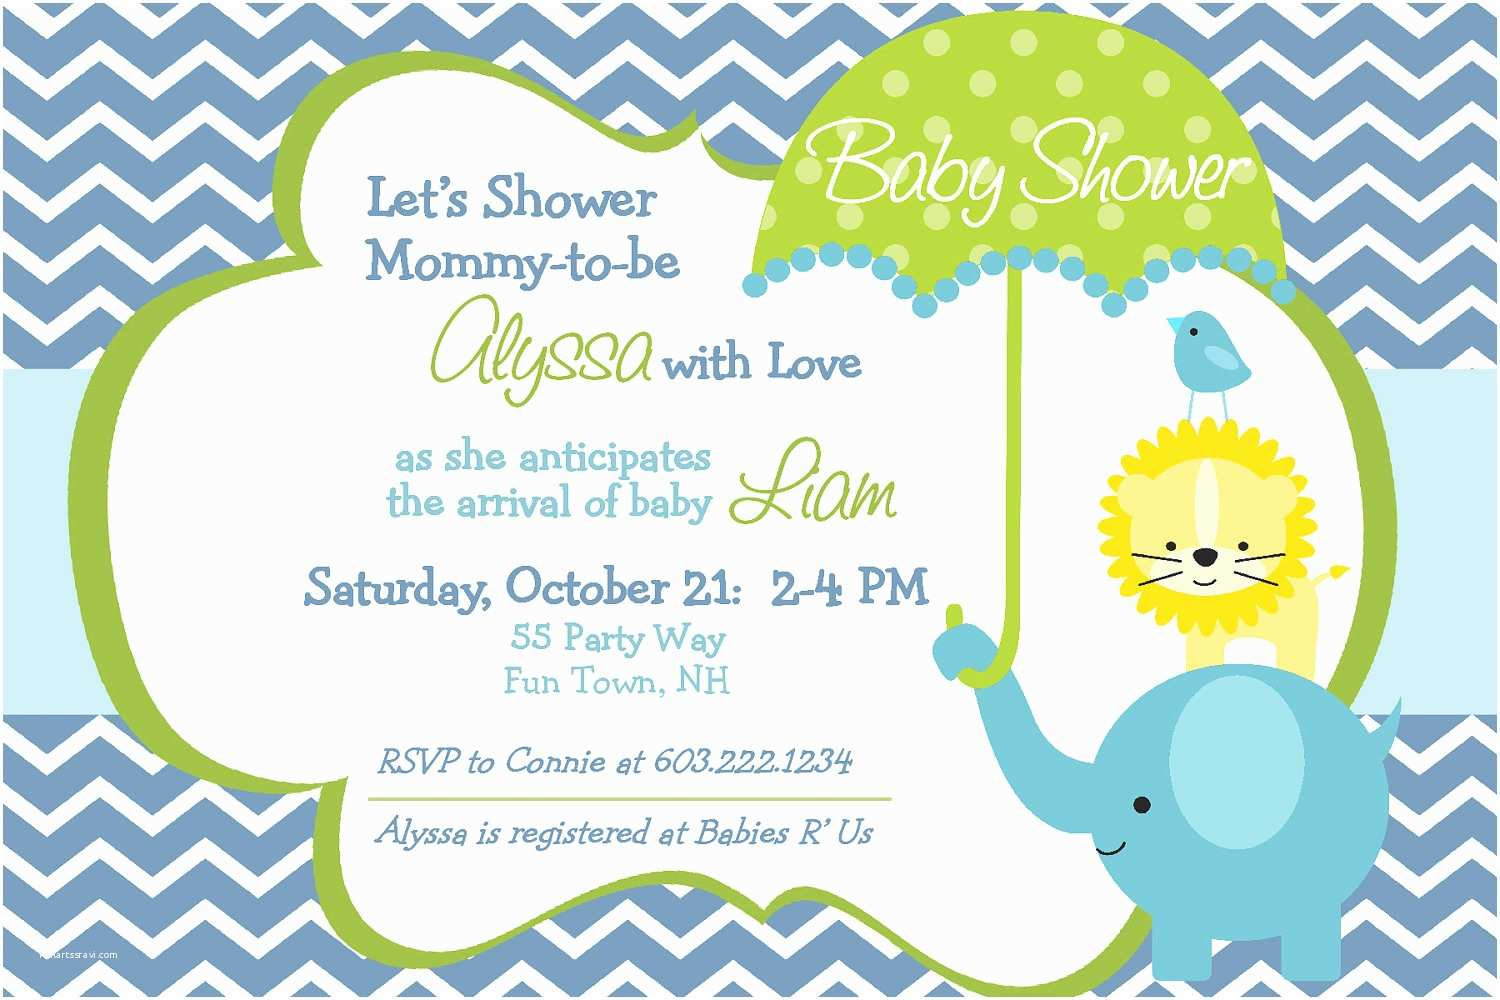 Baby Shower Invitation Examples Baby Shower Invitations for Boy & Girls Baby Shower